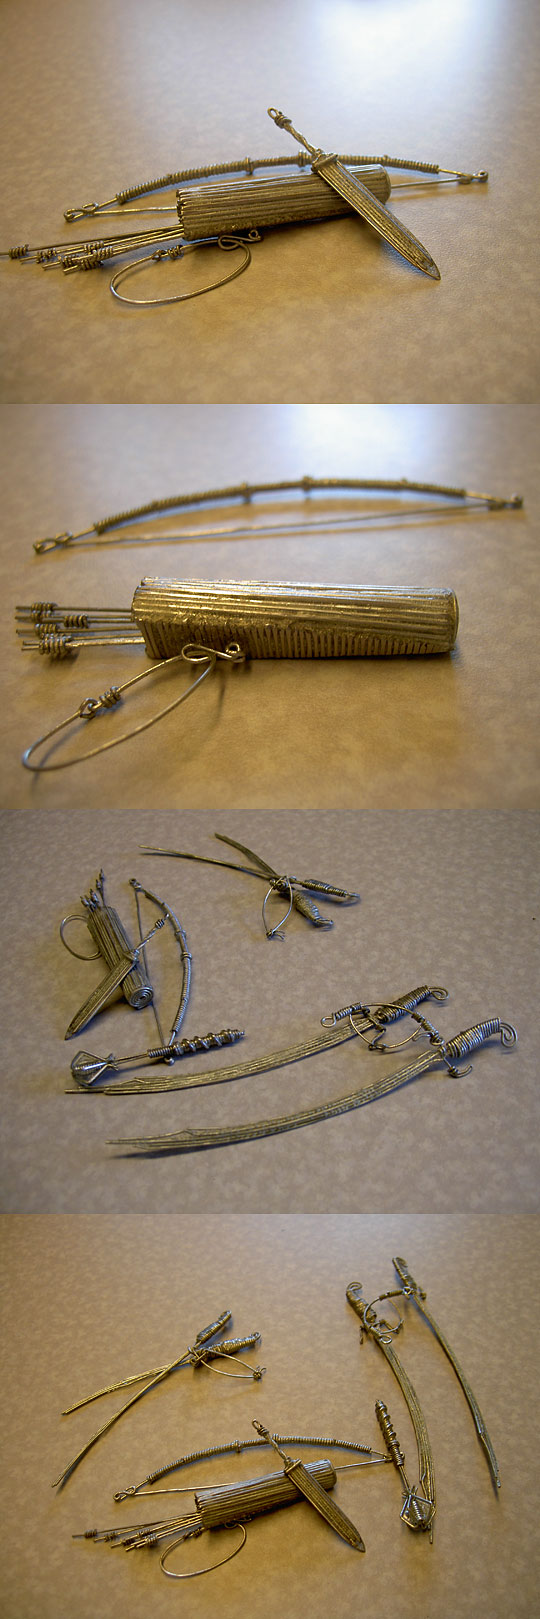 weapons made out of paper clips